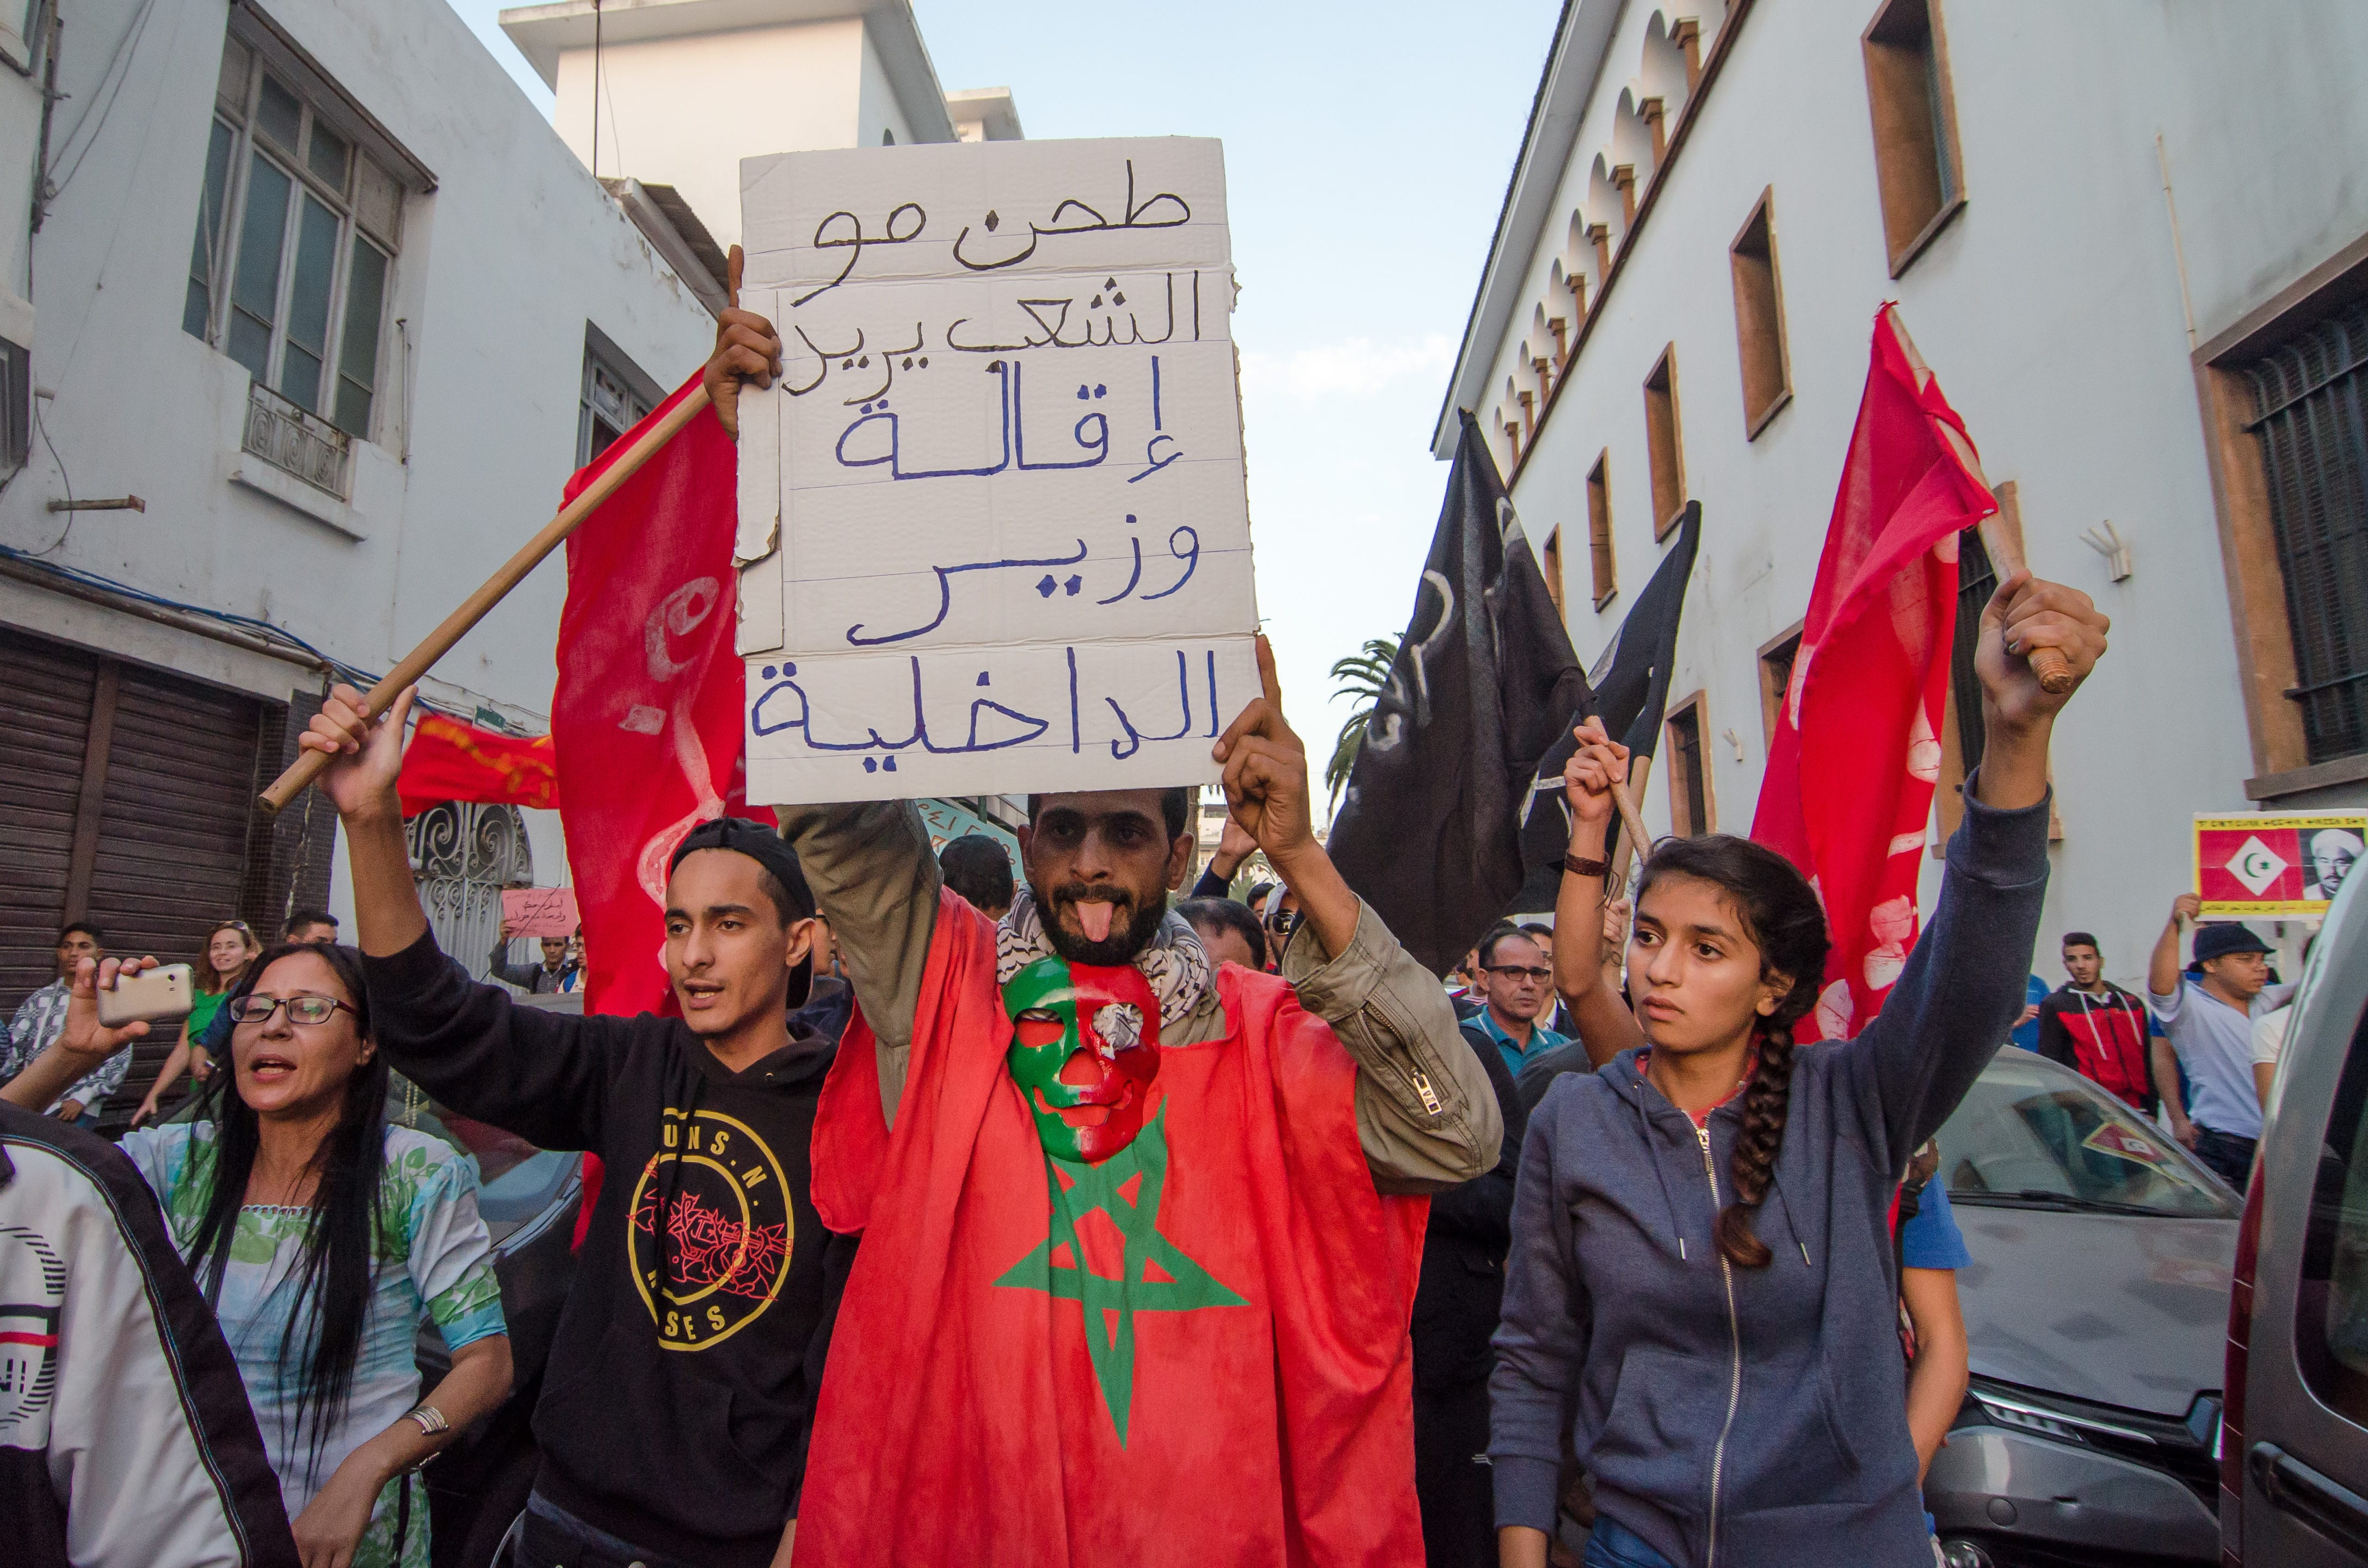 What you should know about the Moroccan people - Morocco